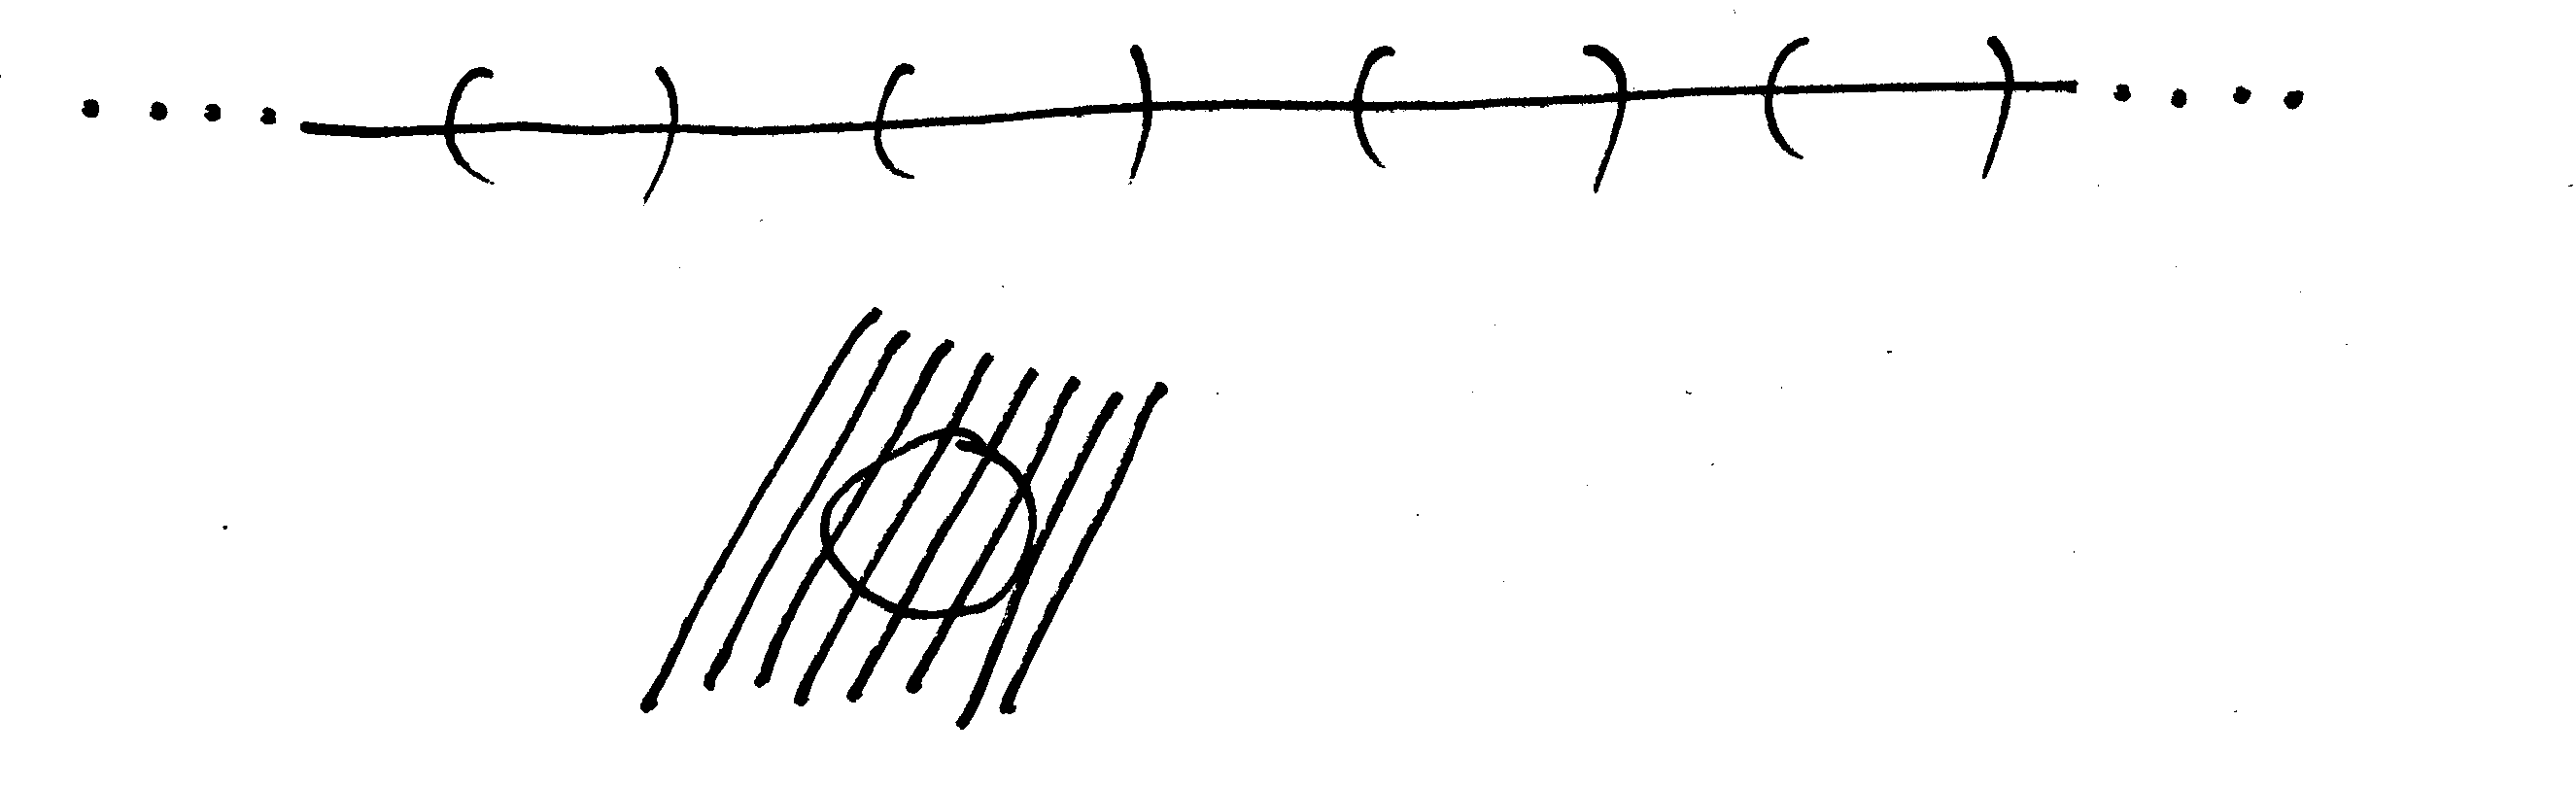 diffgeoIV/sketches/17.png